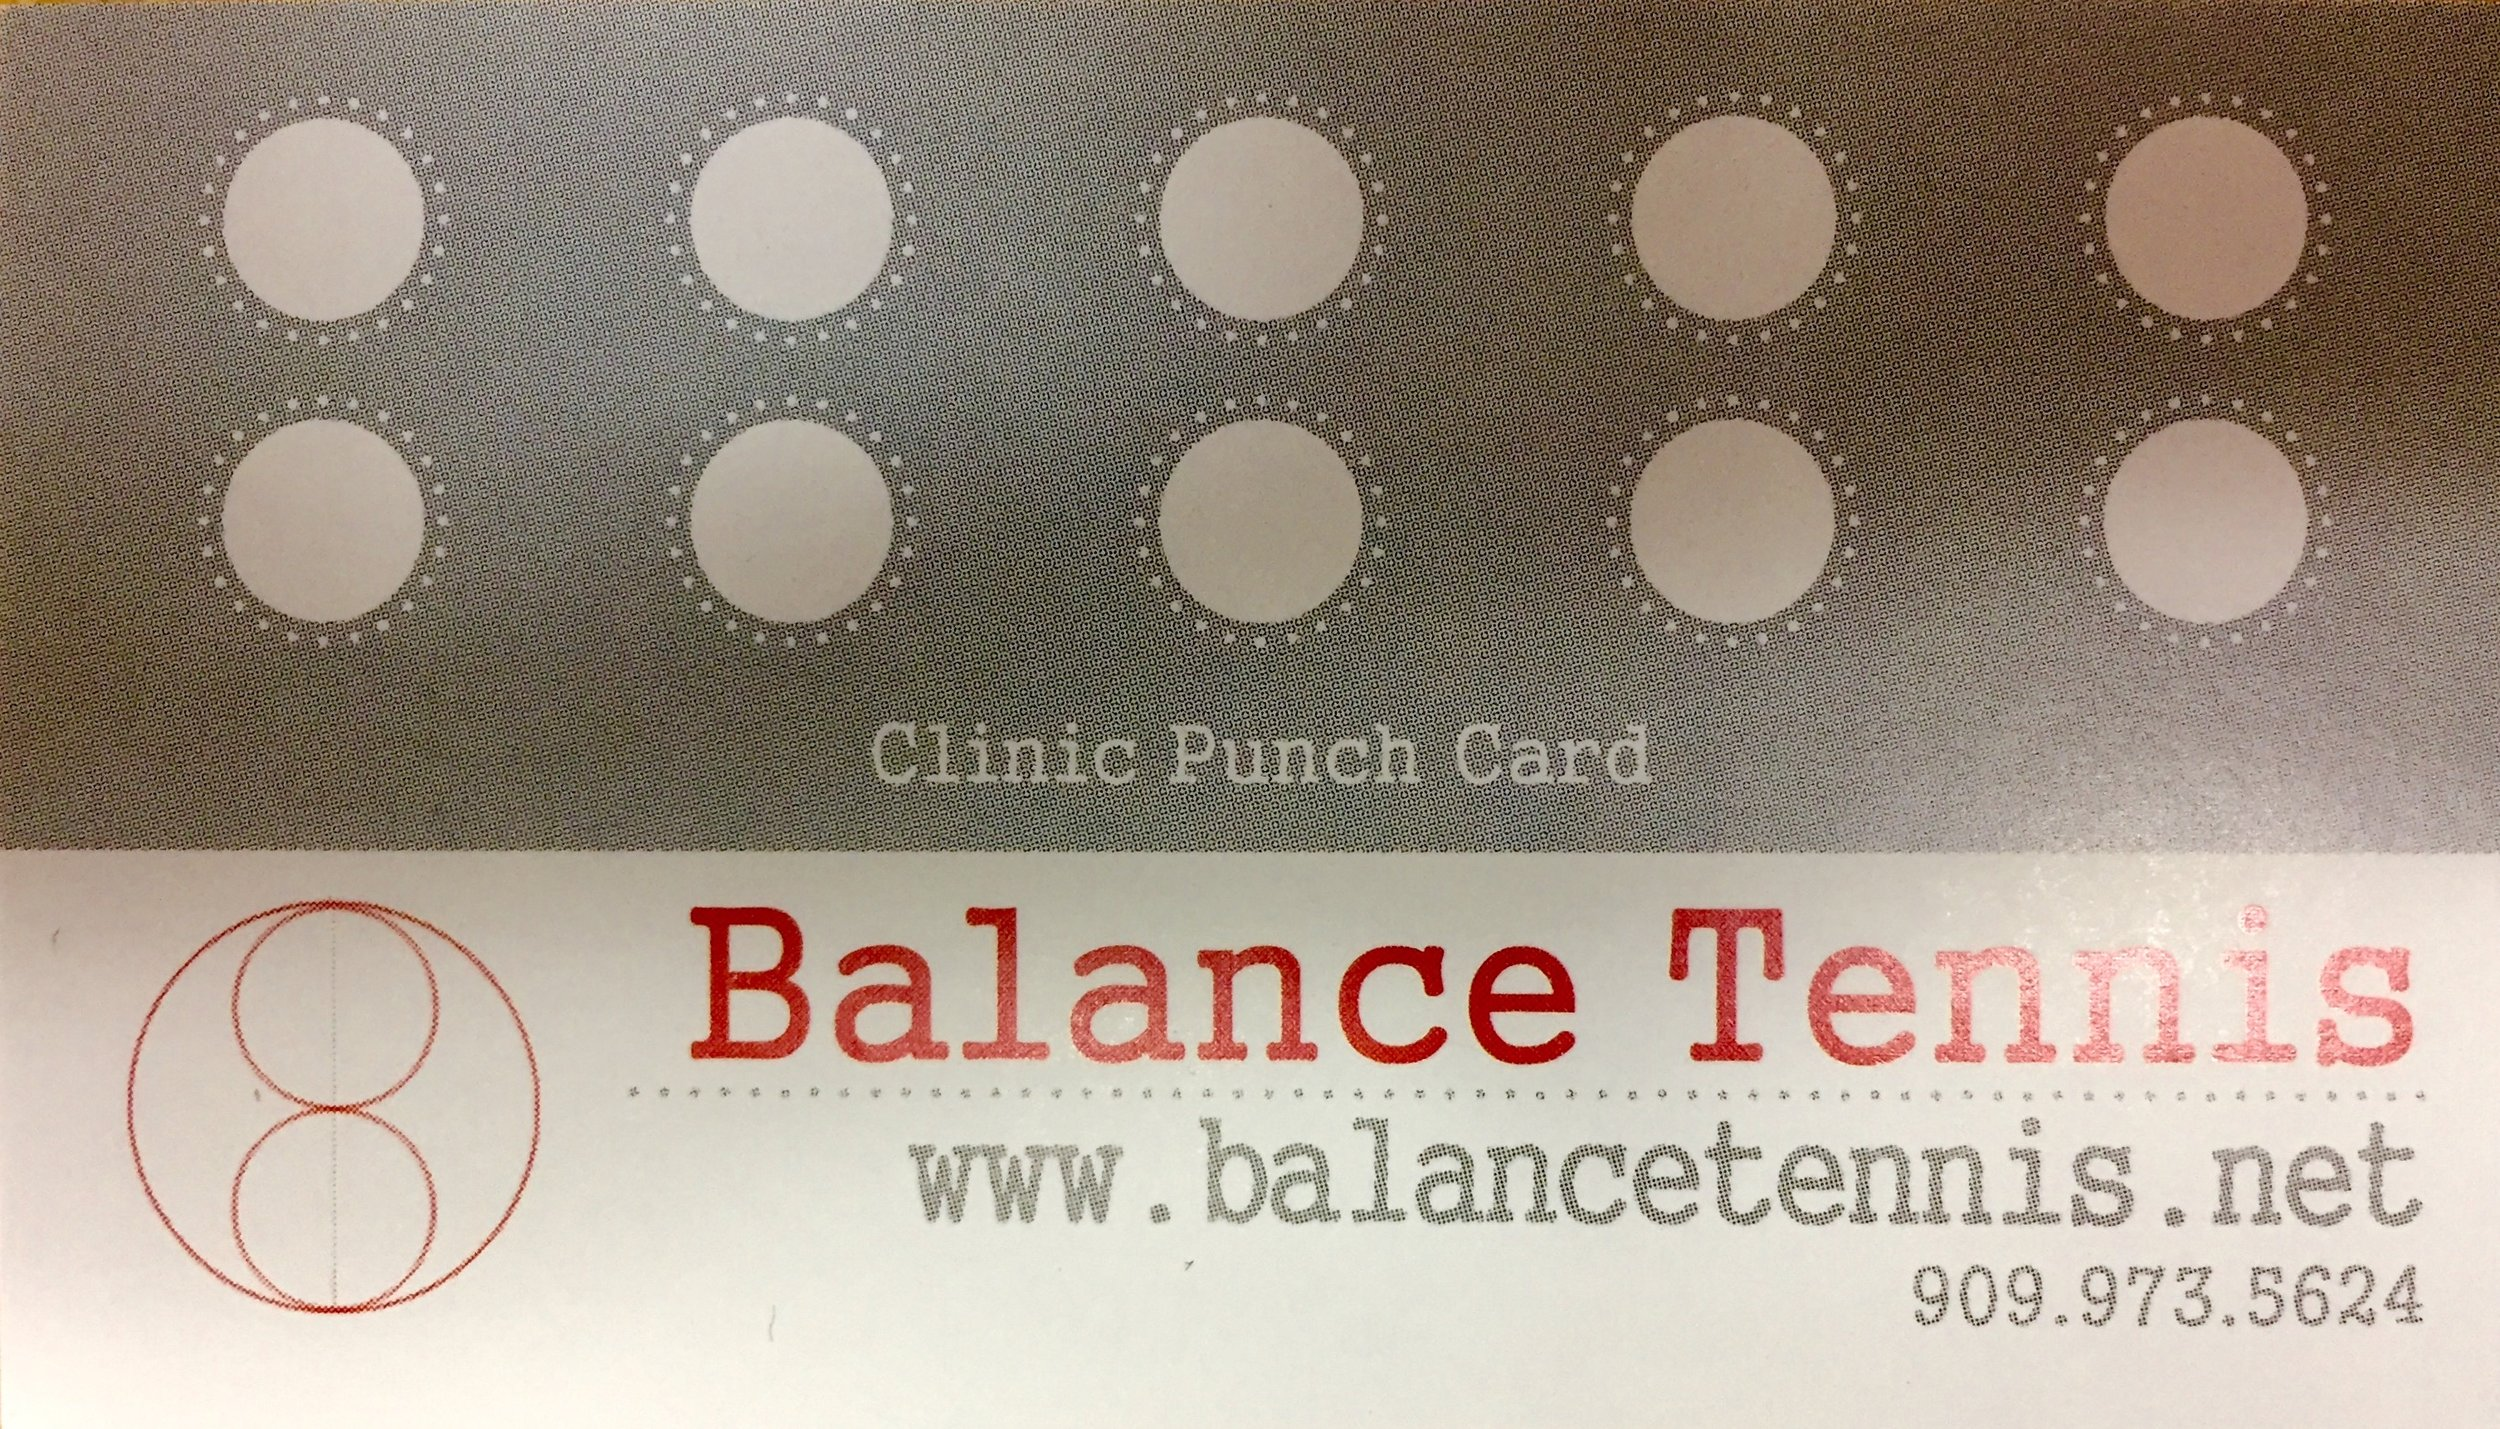 - When you purchase clinics online, you will receive a punch card. We will keep the punch card on file and mark each clinic your child attends.